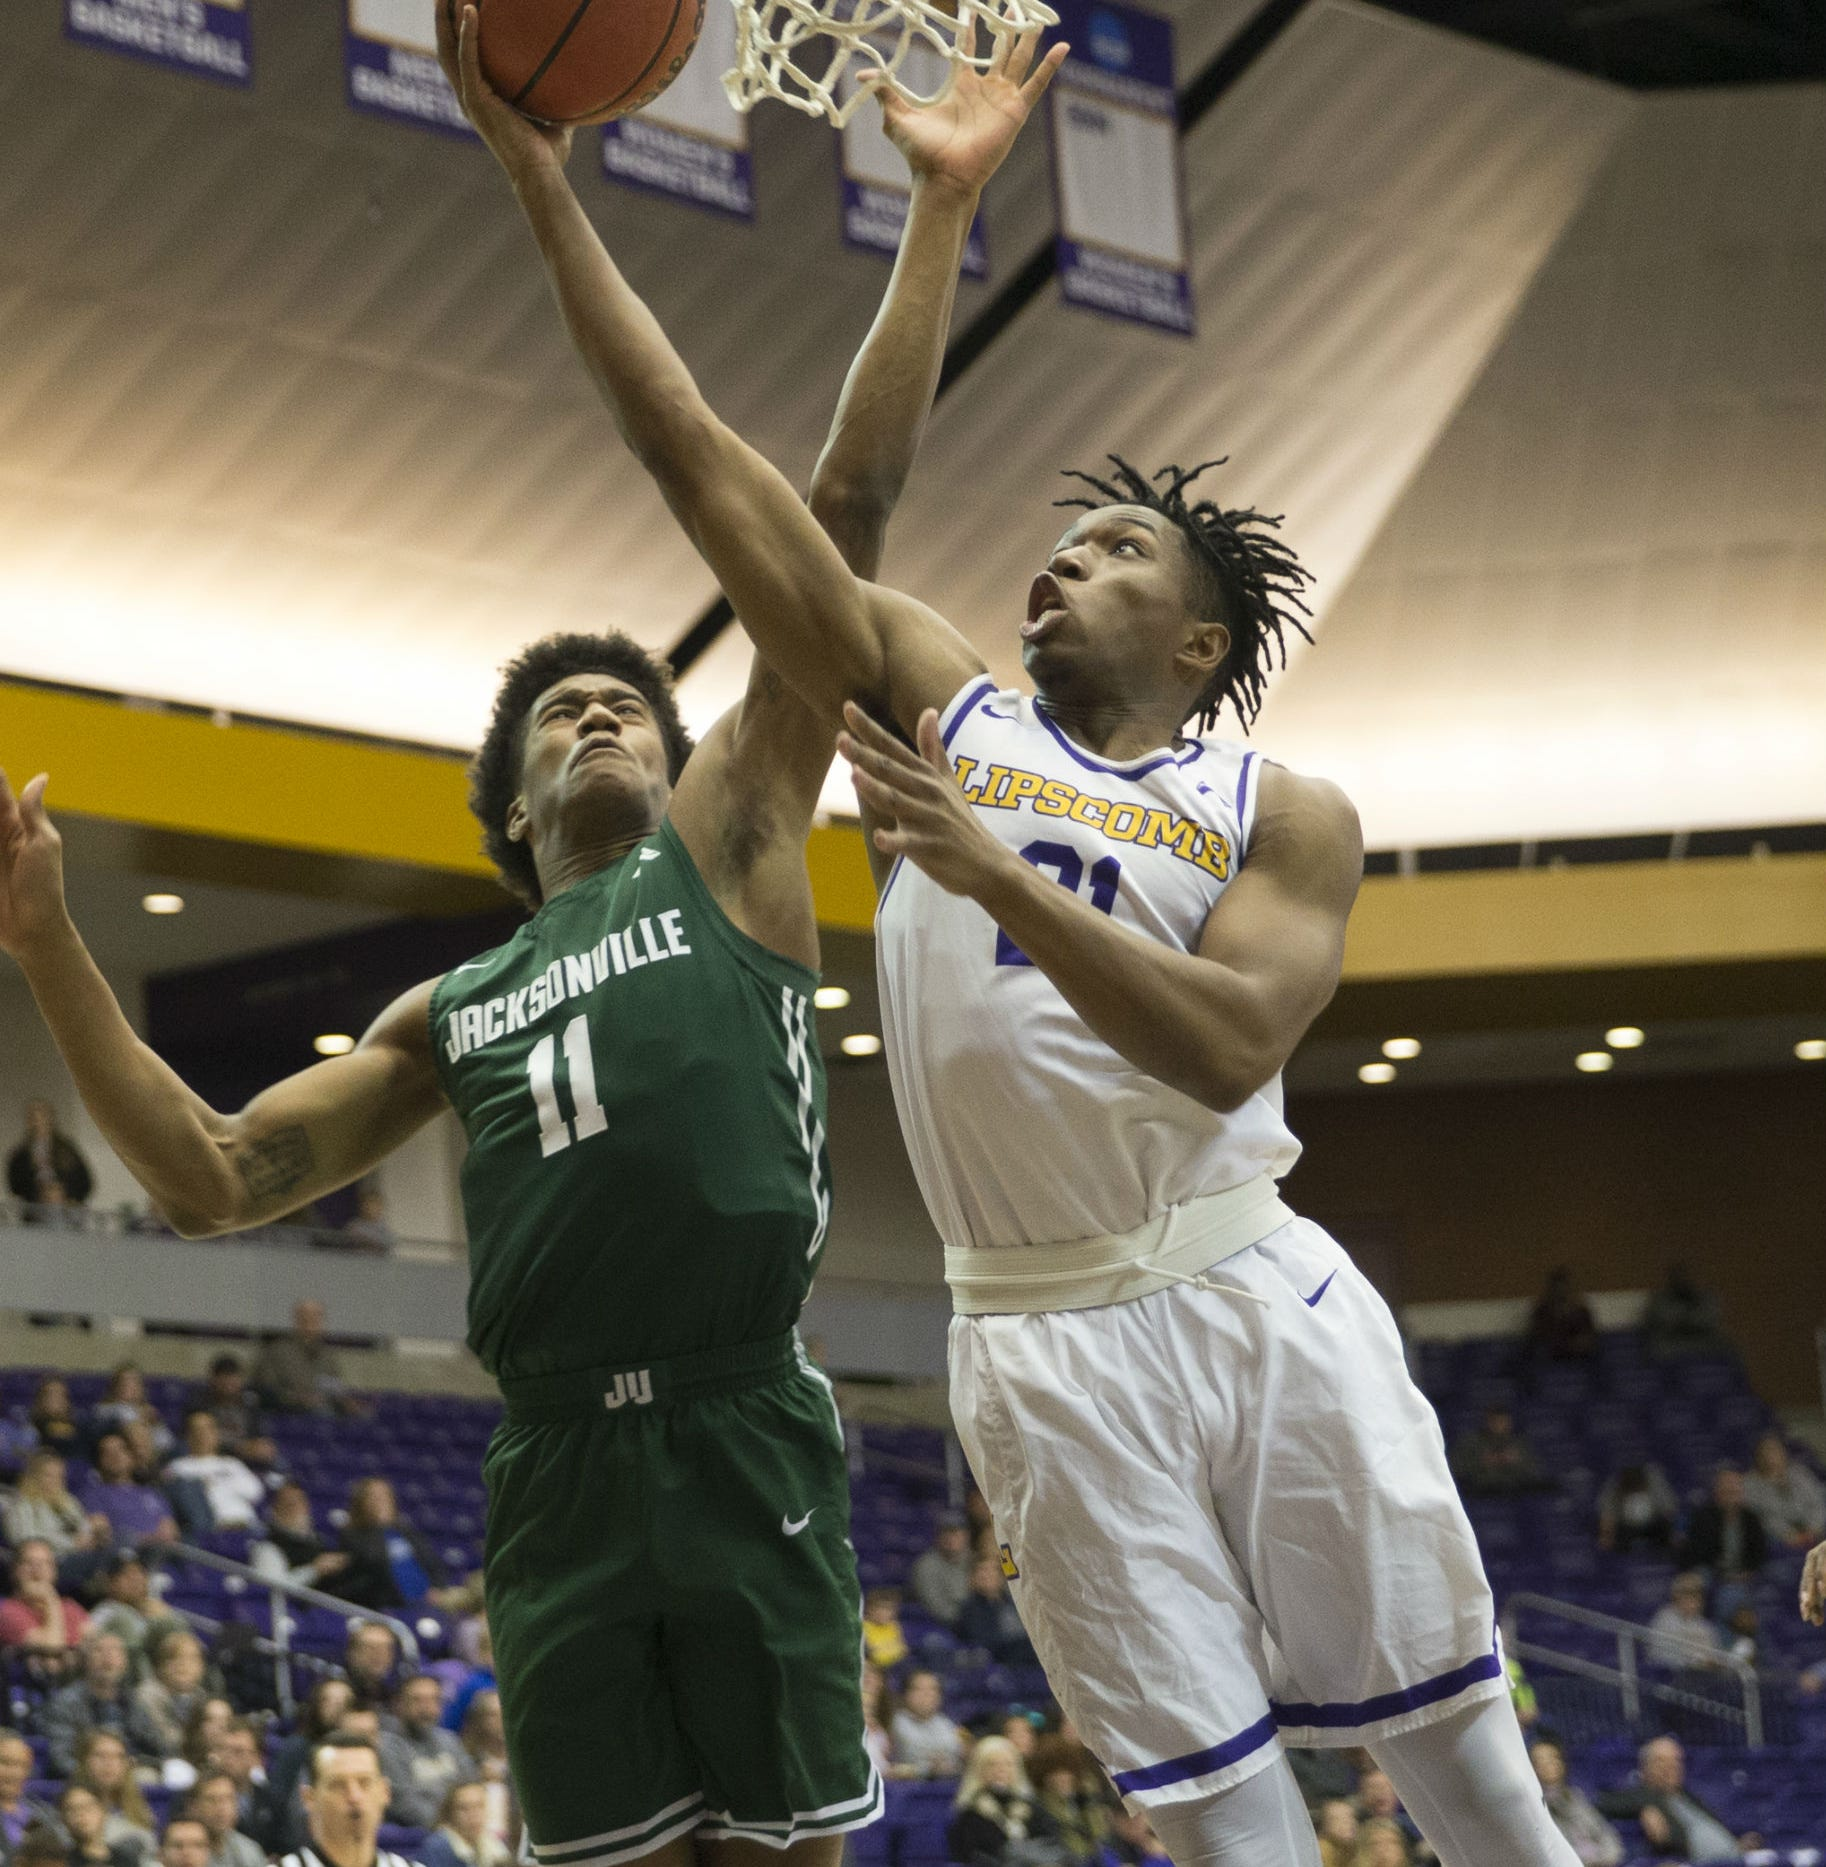 Lipscomb's Kenny Cooper (21) puts up a shot against Jacksonville's Jalyn Hinton (11) in Saturday's game at Allen Arena.